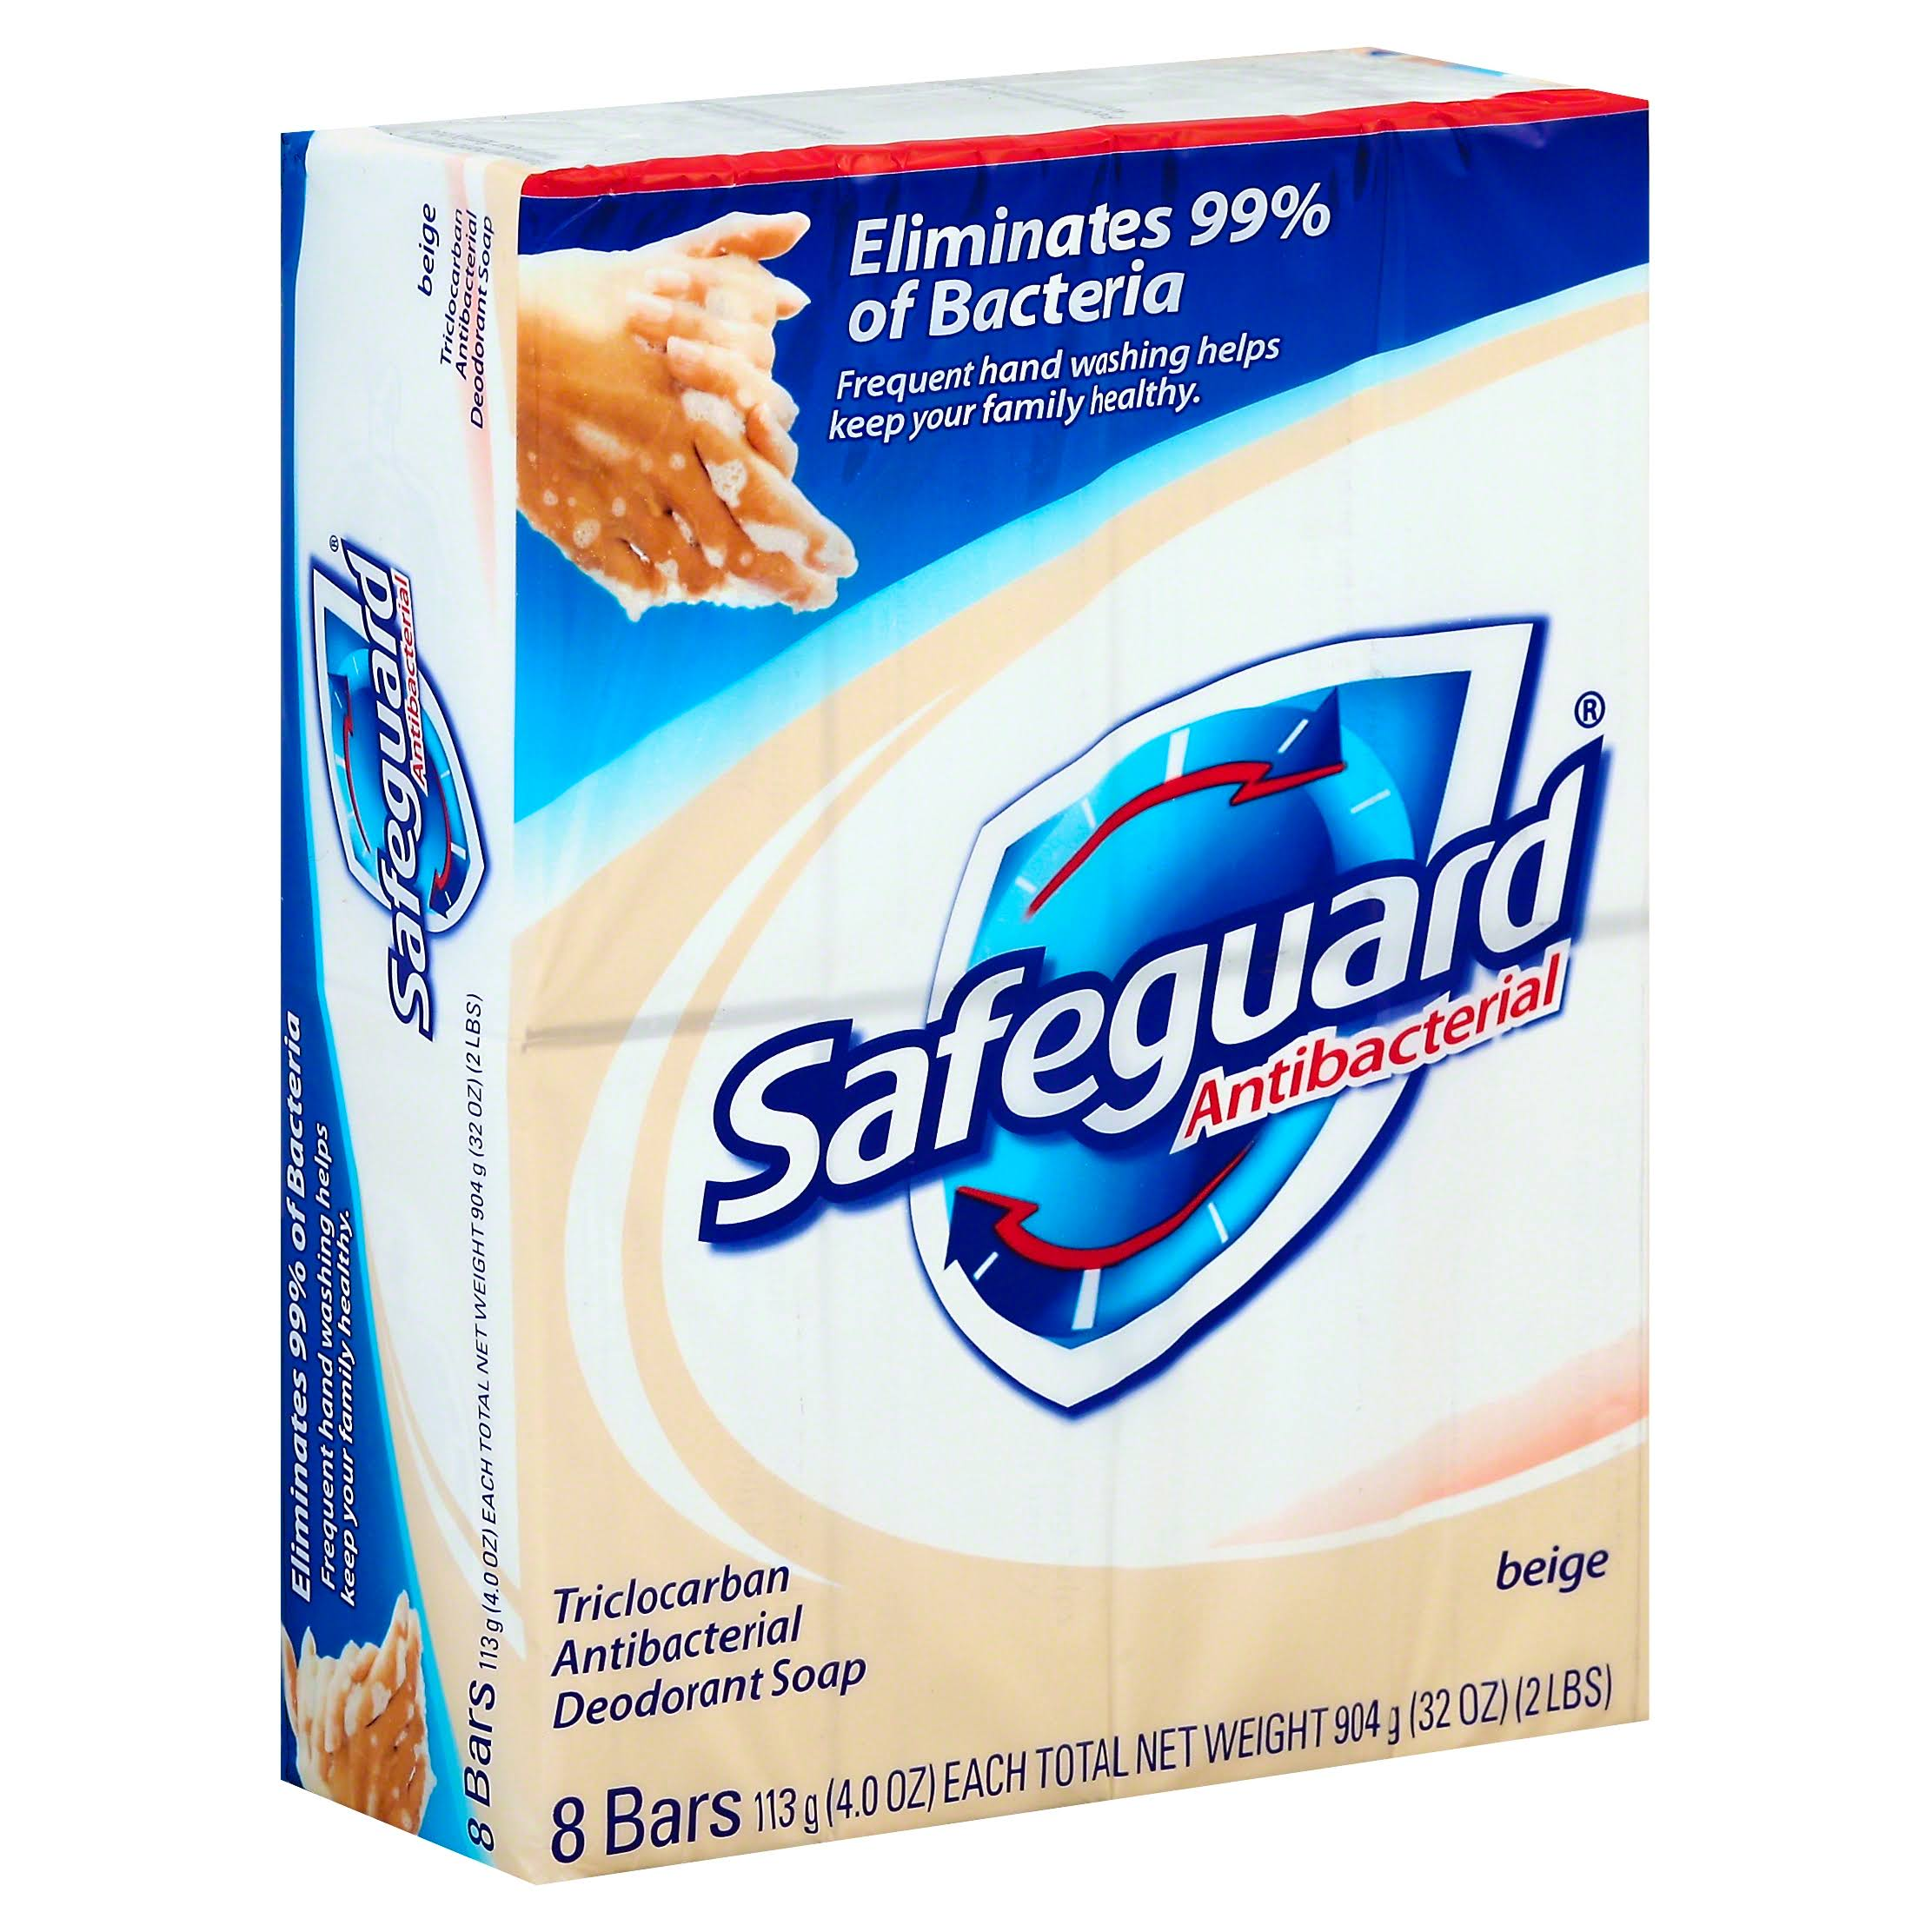 Safeguard Antibacterial Soap - Beige, 8ct